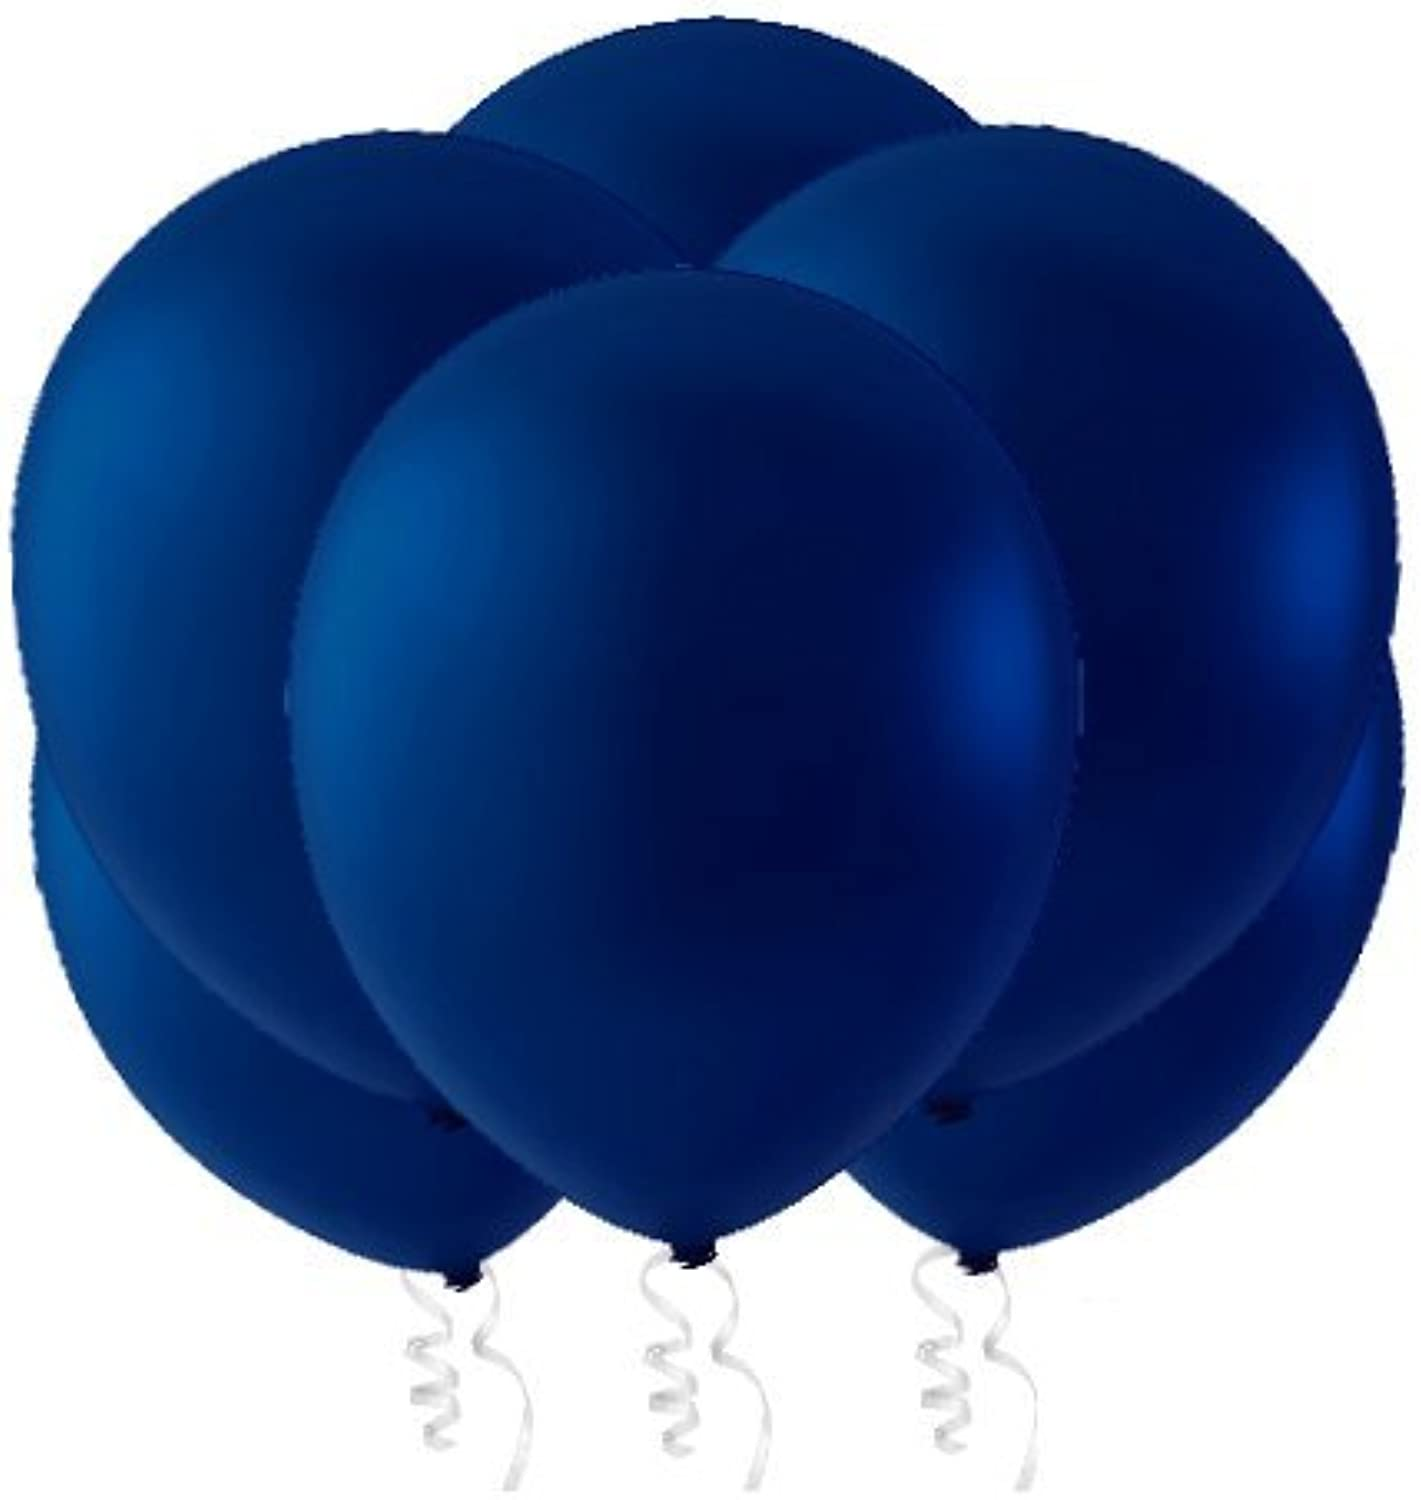 Creative Balloons 16  Latex Balloons  Pack of 144 Piece  Decorator Navy bluee